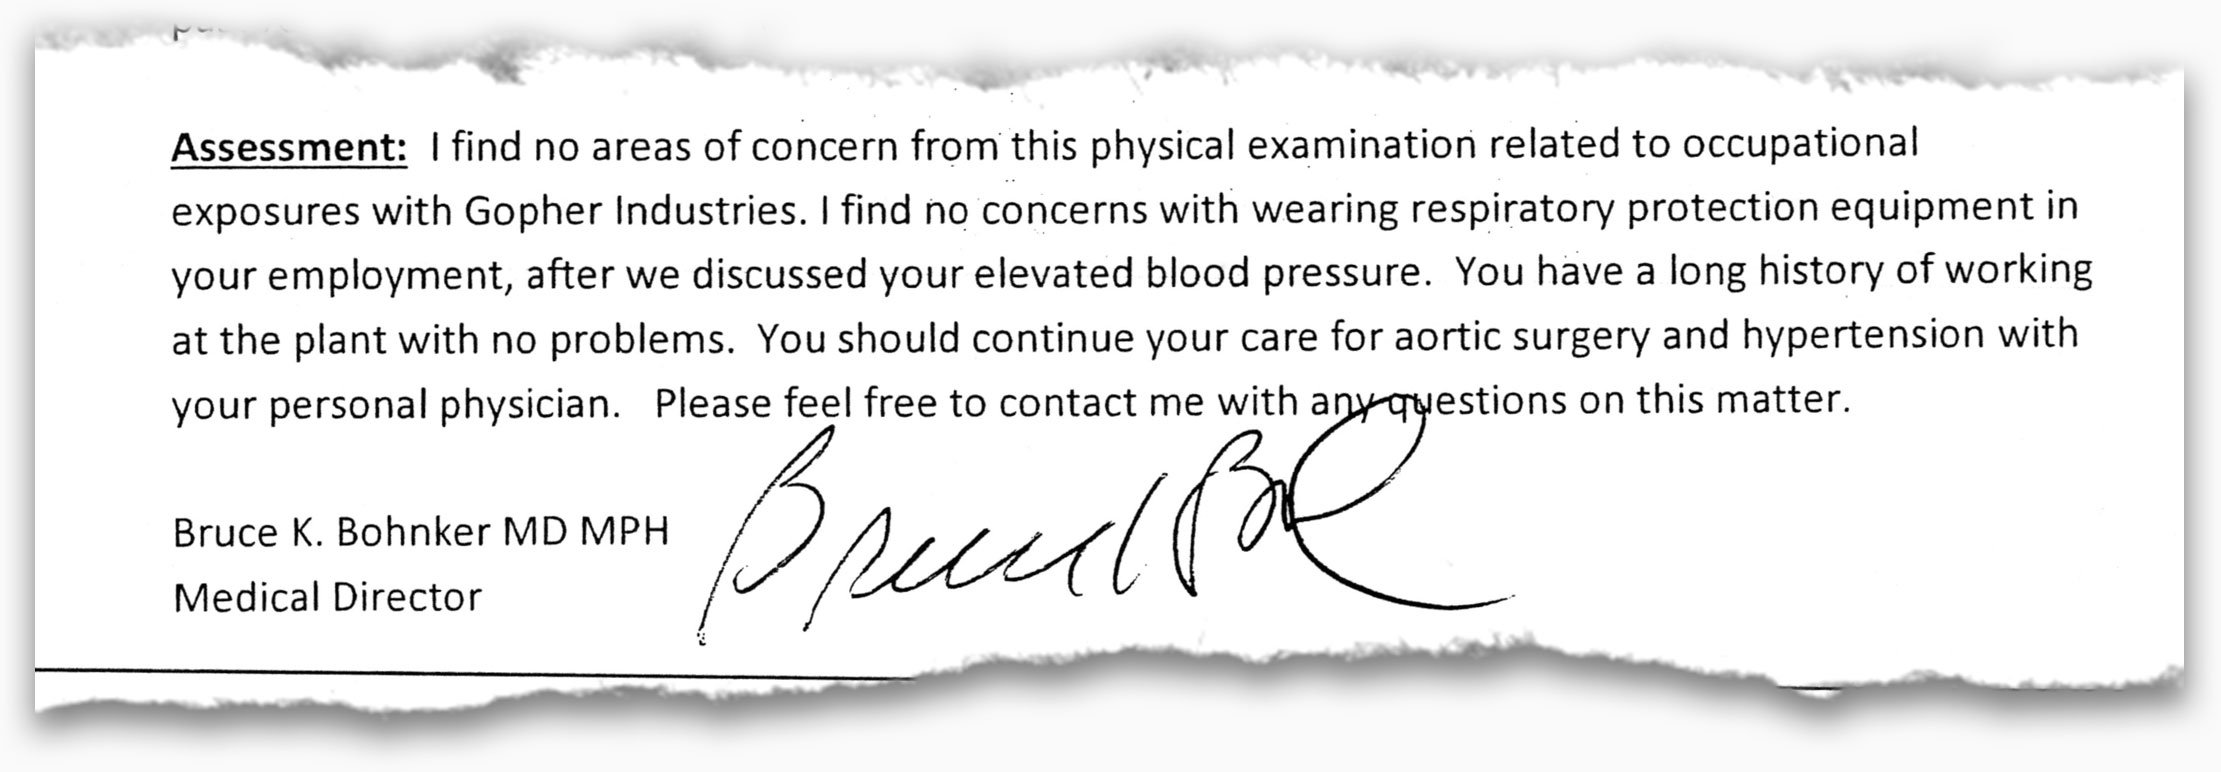 Part of a doctor's typed assessment of a Gopher employee's health.